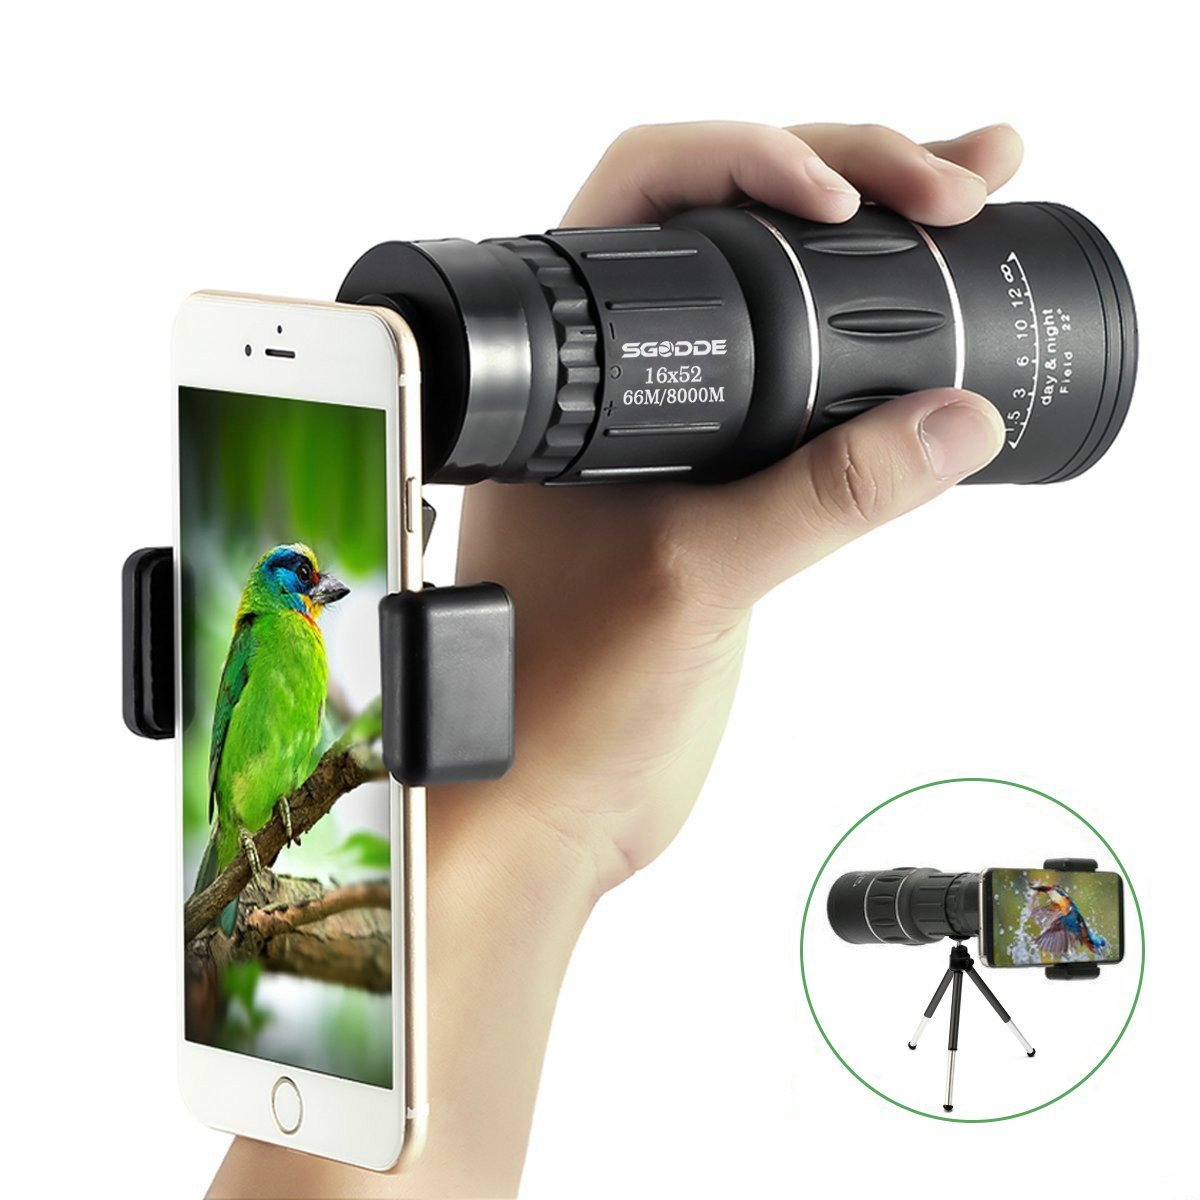 16x52 Dual Focus Monocular Telescope,SGODDE Waterproof Spotting Scopes ,HD Wide View, BAK4 Prism Scope with Hand Strap,Tripod , Universal Cell Phone Adapters for Wildlife Viewing Camping Travelling by SGODDE